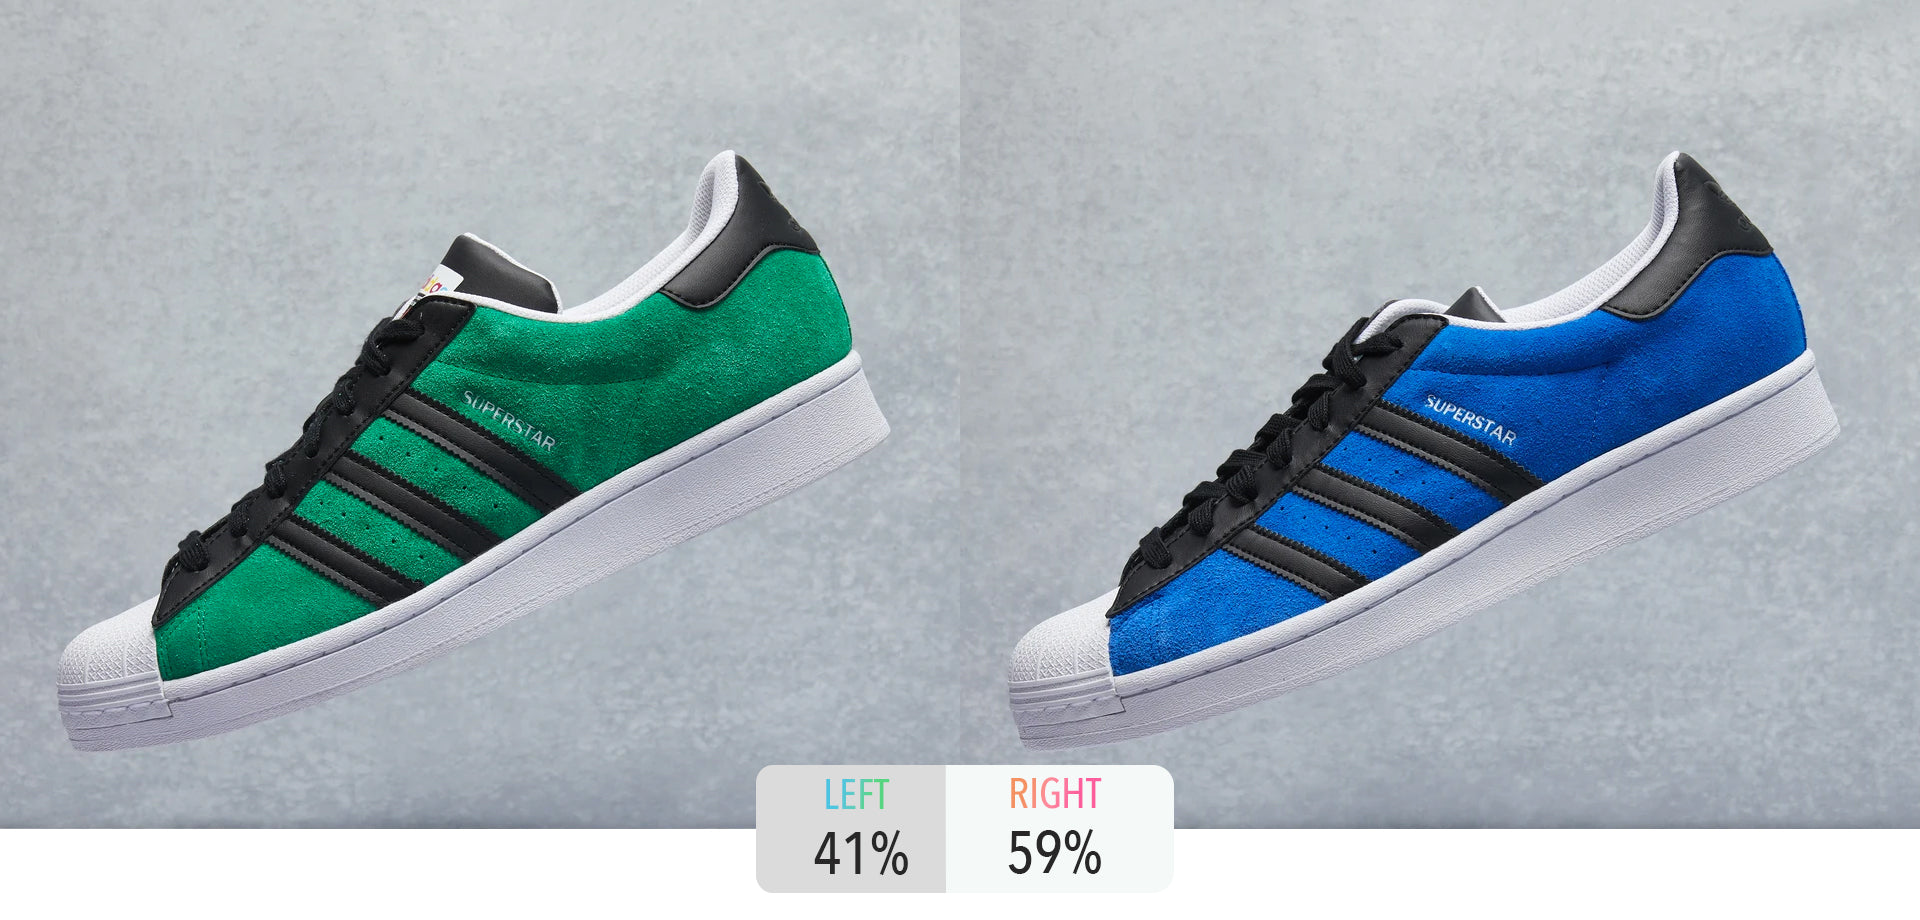 Drop 2 Drop, Dropkick - adidas Originals Superstar Shoe